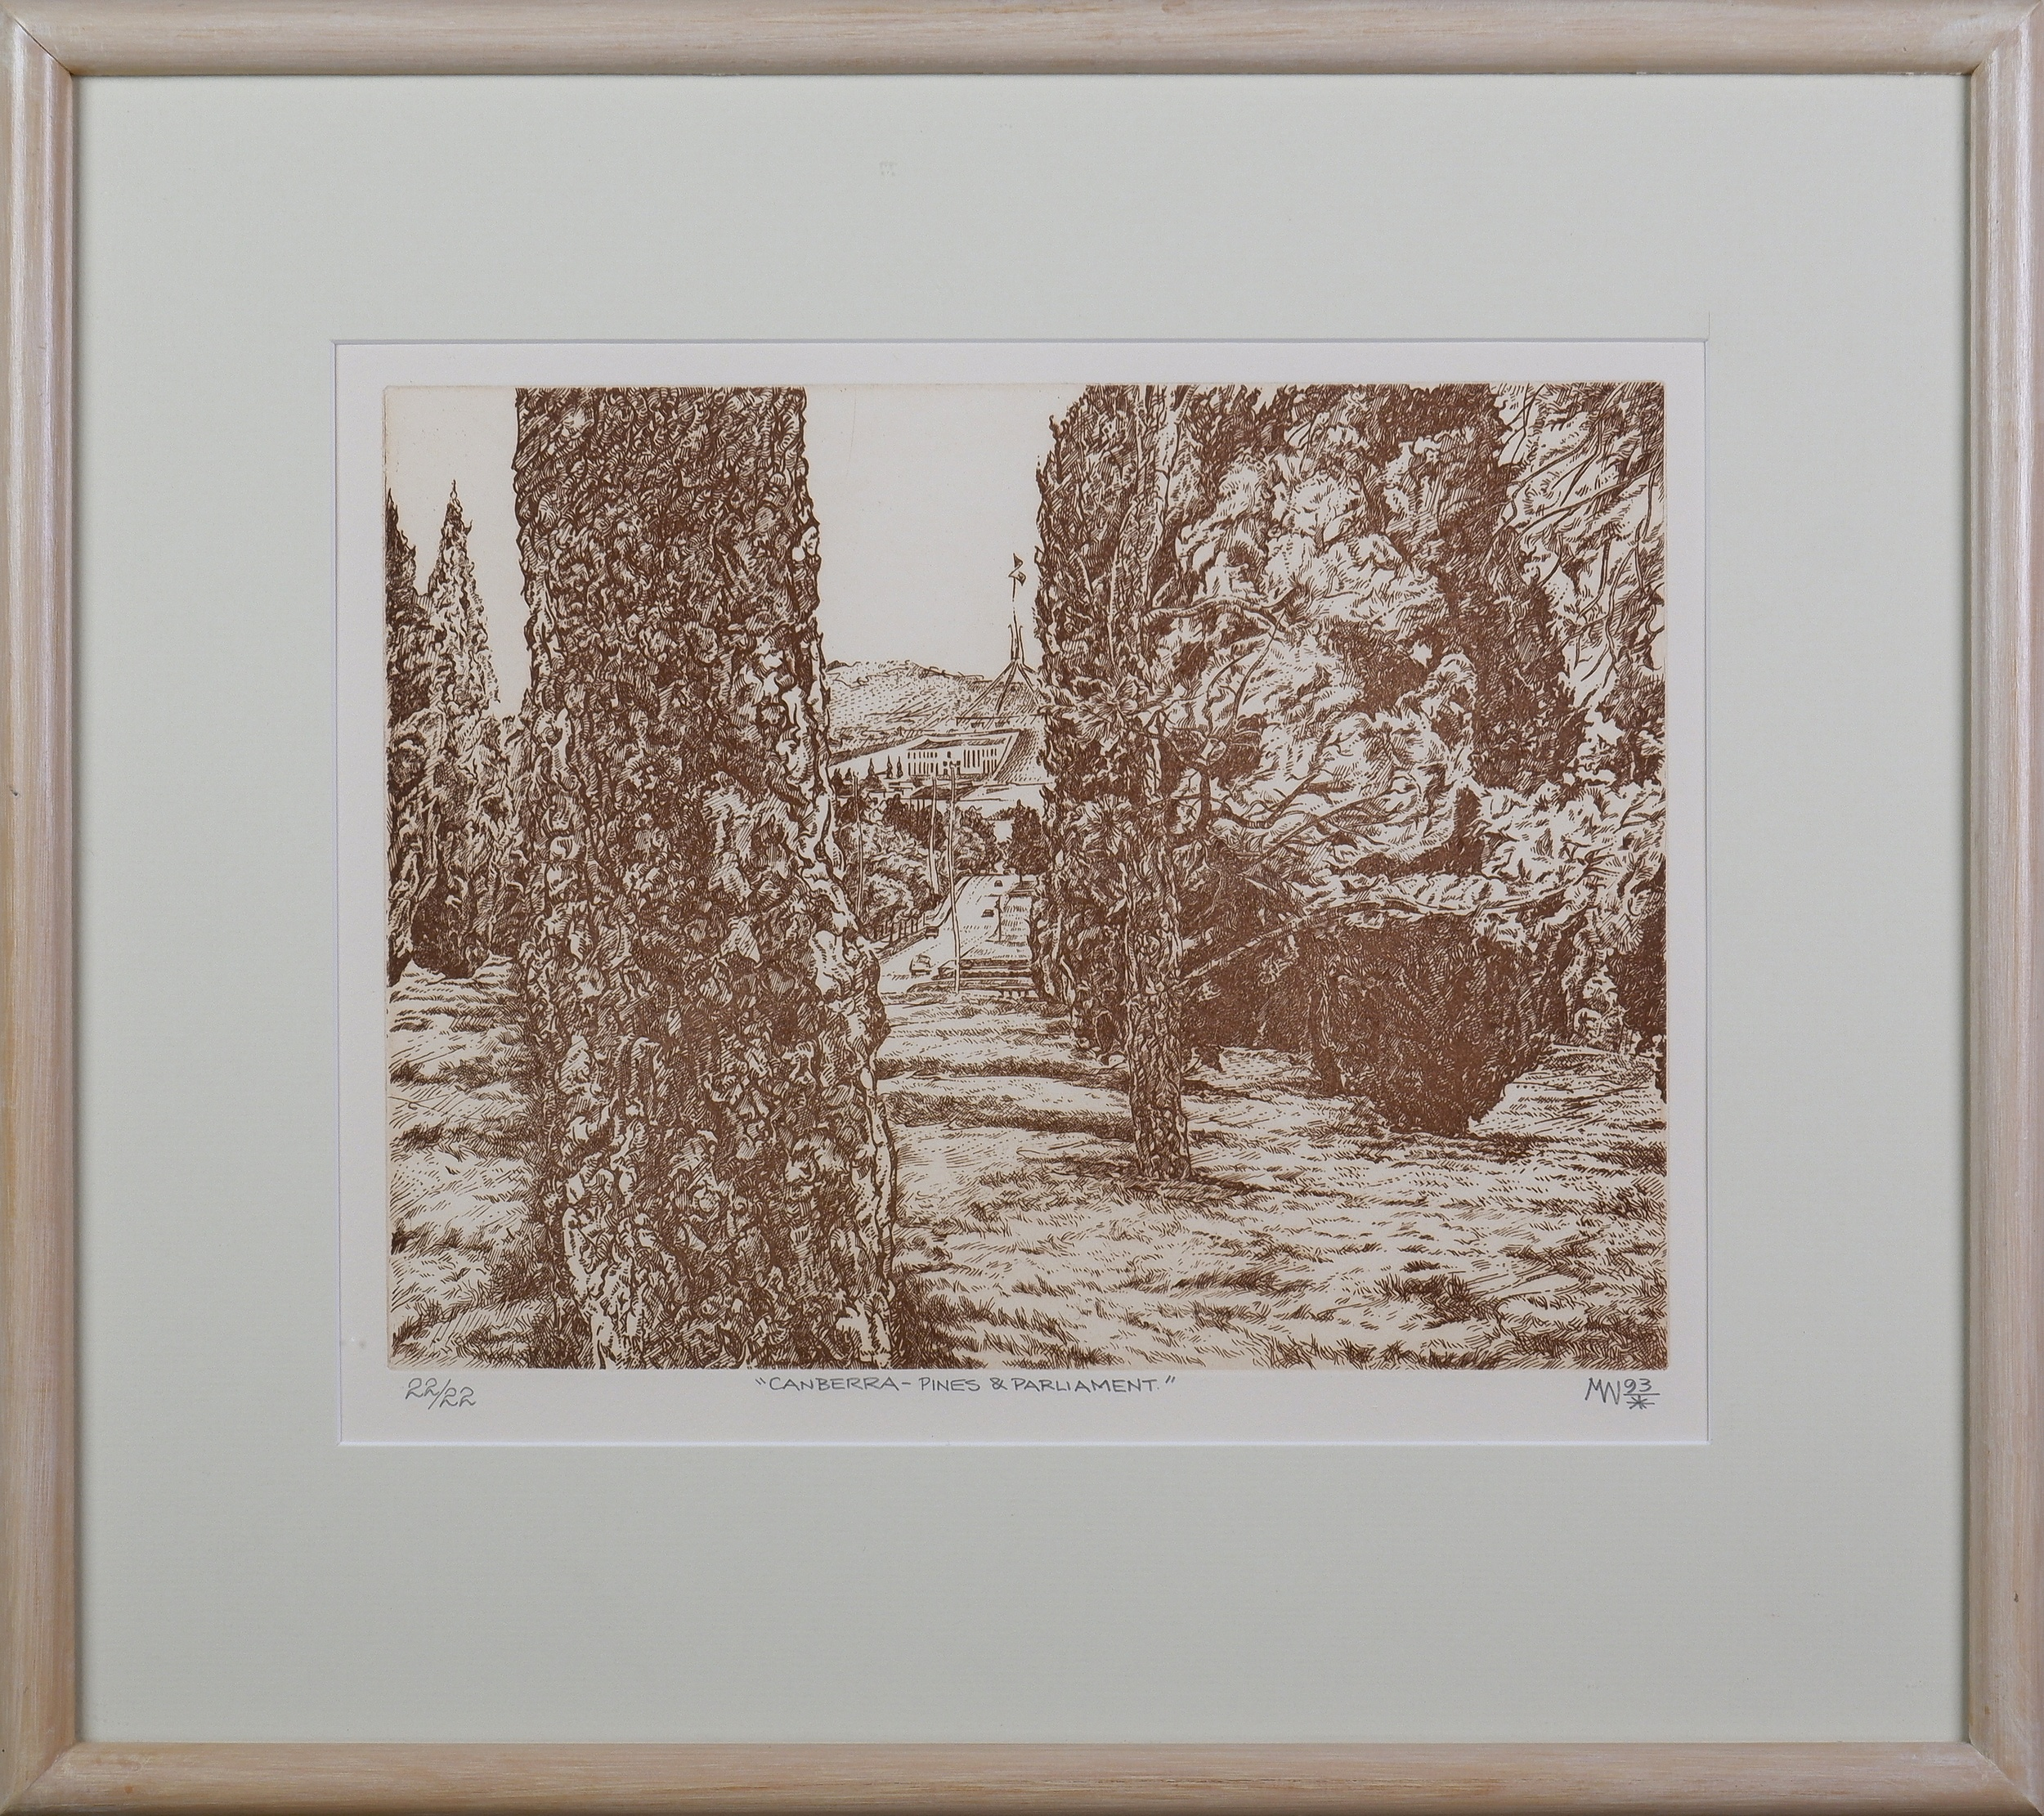 'Michael Winters (born 1943), Canberra - Pines and Parliament 1993, Etching, Edition 22/22, 24.5 x 31.5 cm (image size) '